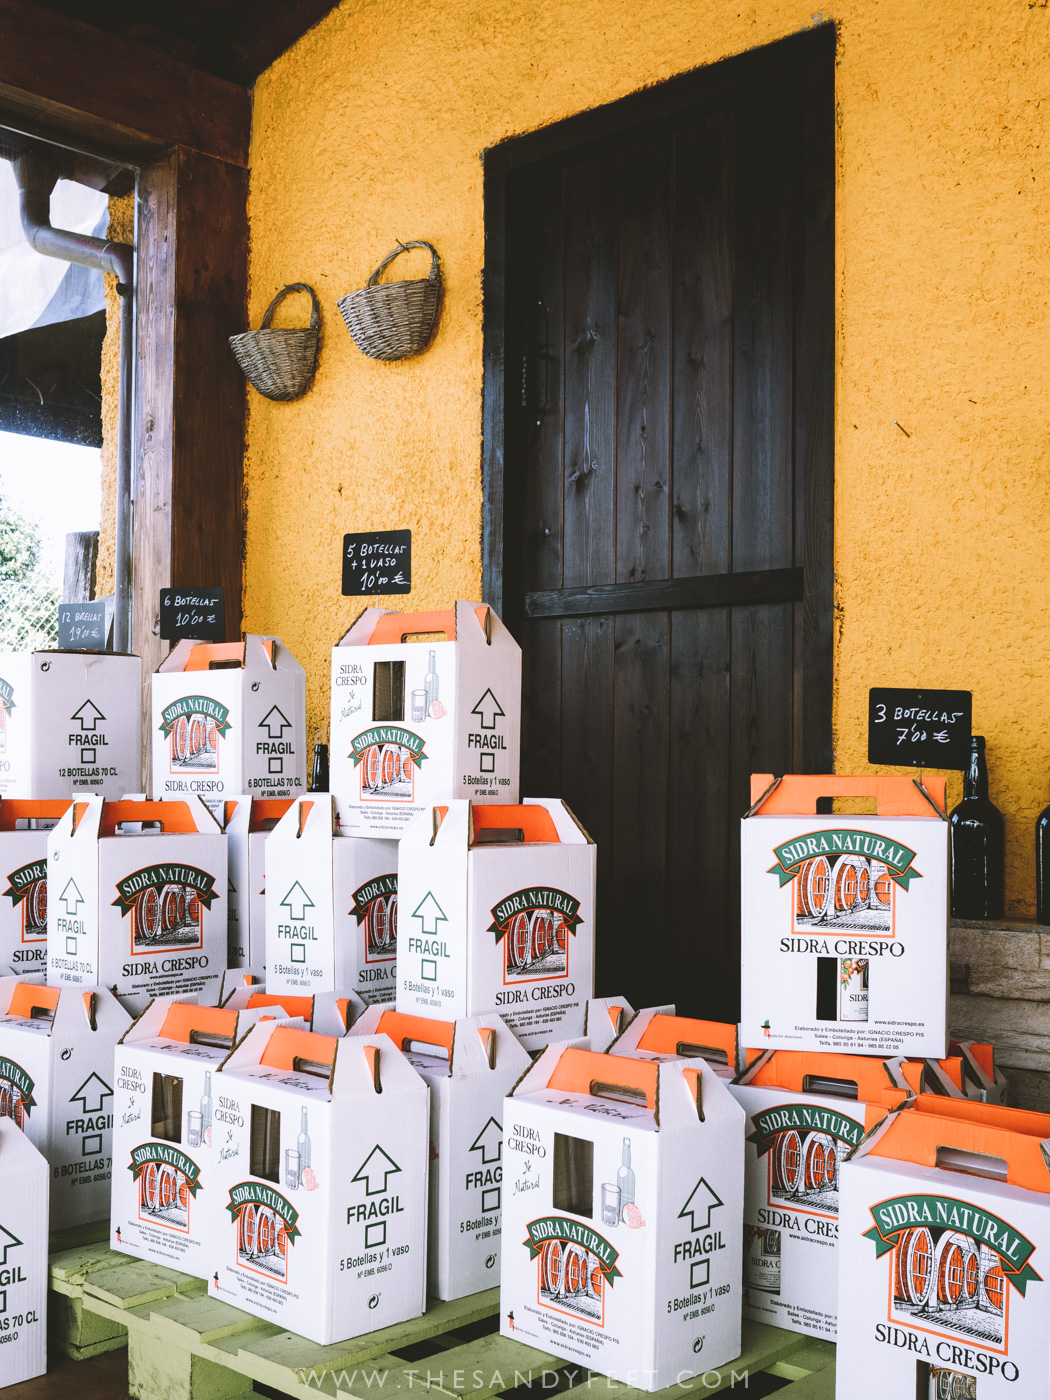 Visit A Traditional Asturias Cider Farm | A Taste Of Northern Spain: 11 Incredible Places To Visit In Asturias | The Best Things To Do In Asturias, Spain